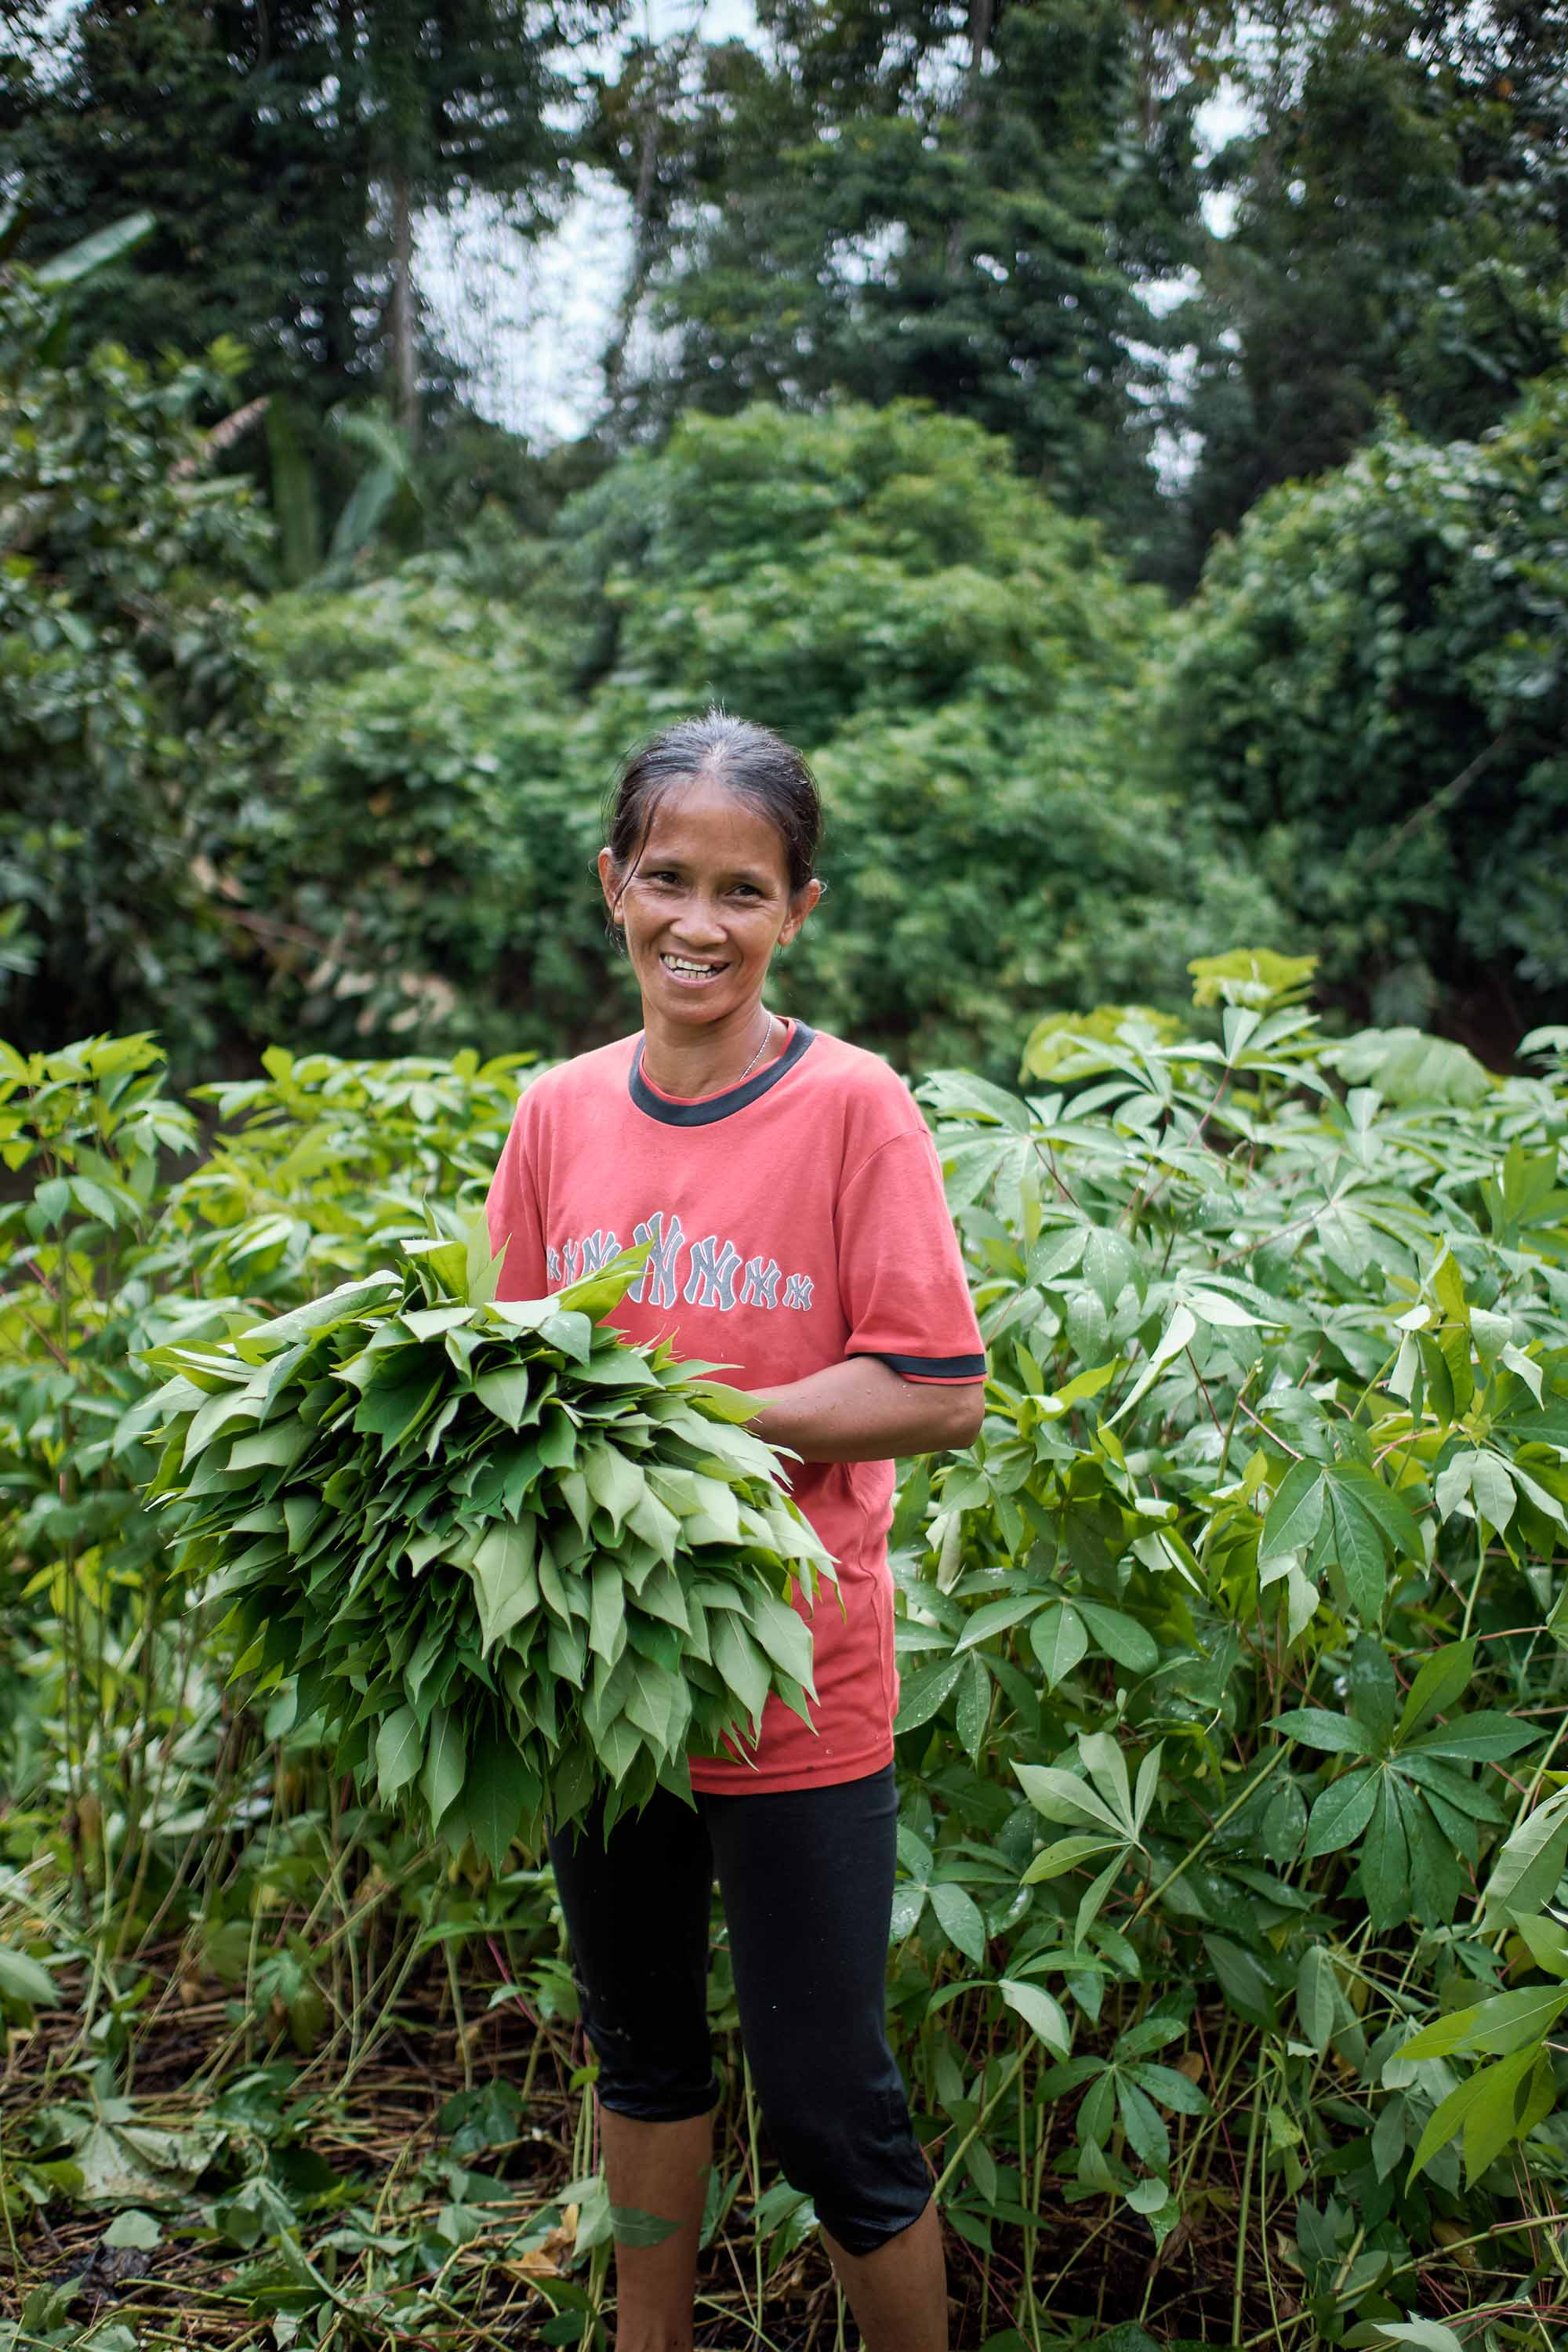 A woman with black hair and in pink shirt holds vegetable leaves harvested from the lush tropical rainforest